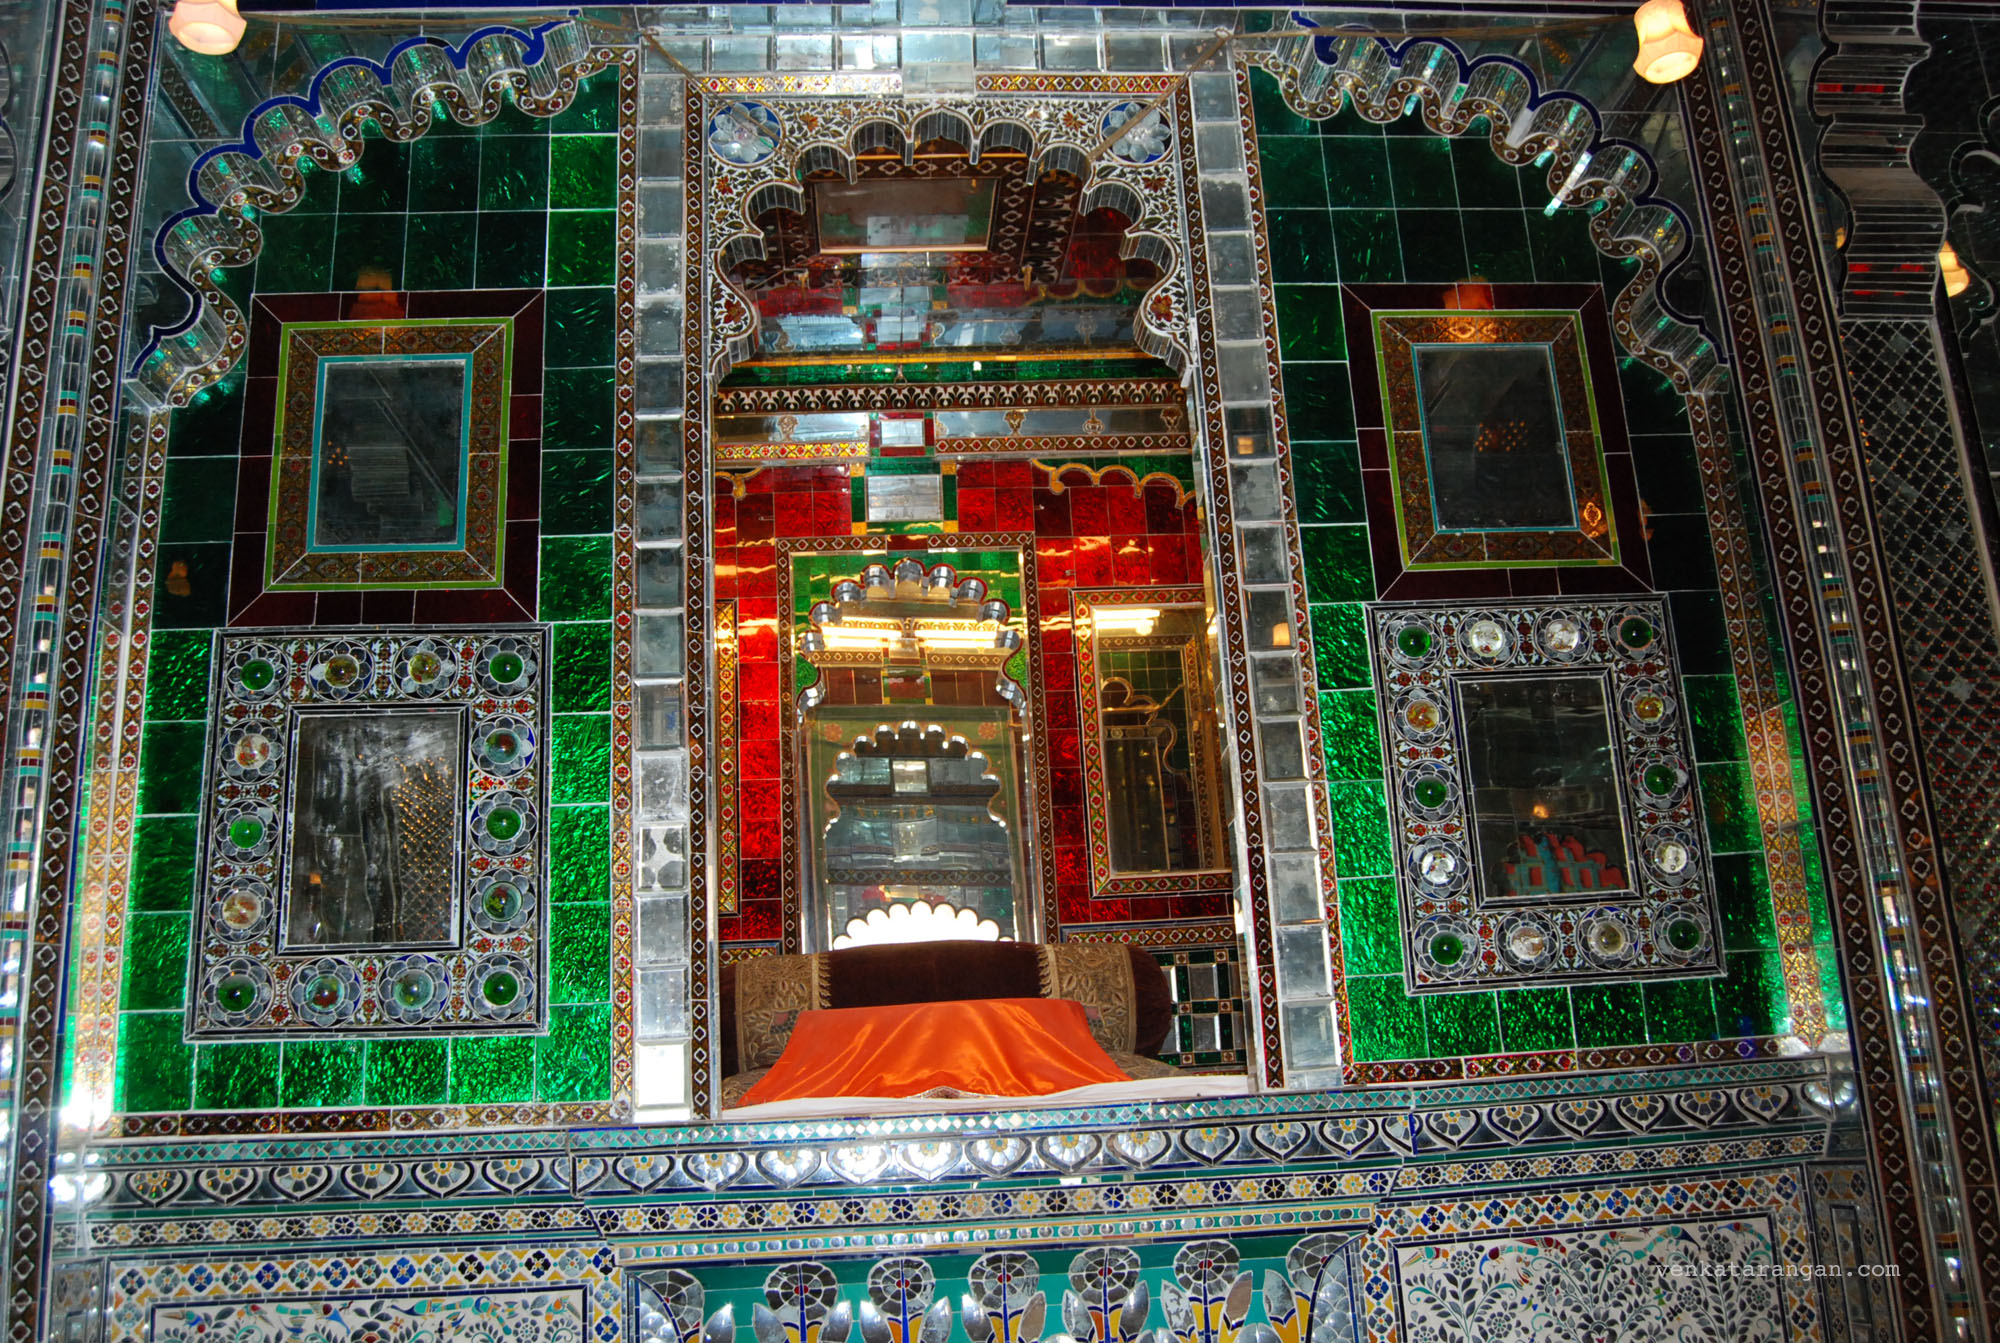 Sheess Mahal or Palace of Mirrors and glasses